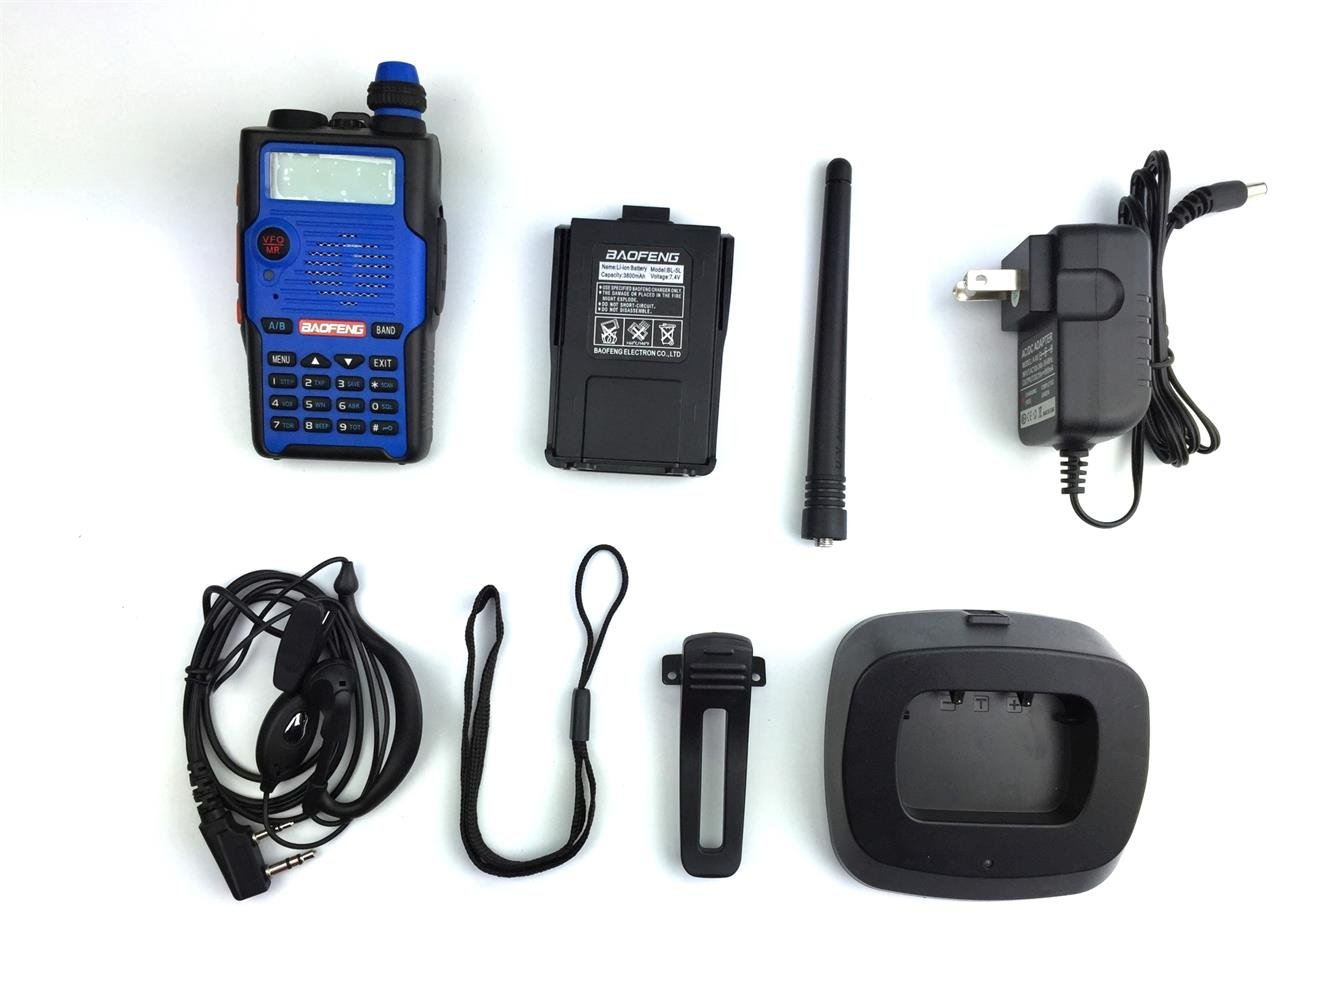 Baofeng UV-5R 5th Generation 136-174/400-520mHZ Two Way Radio Professional FM Transceiver(Blue,Pack of 4)